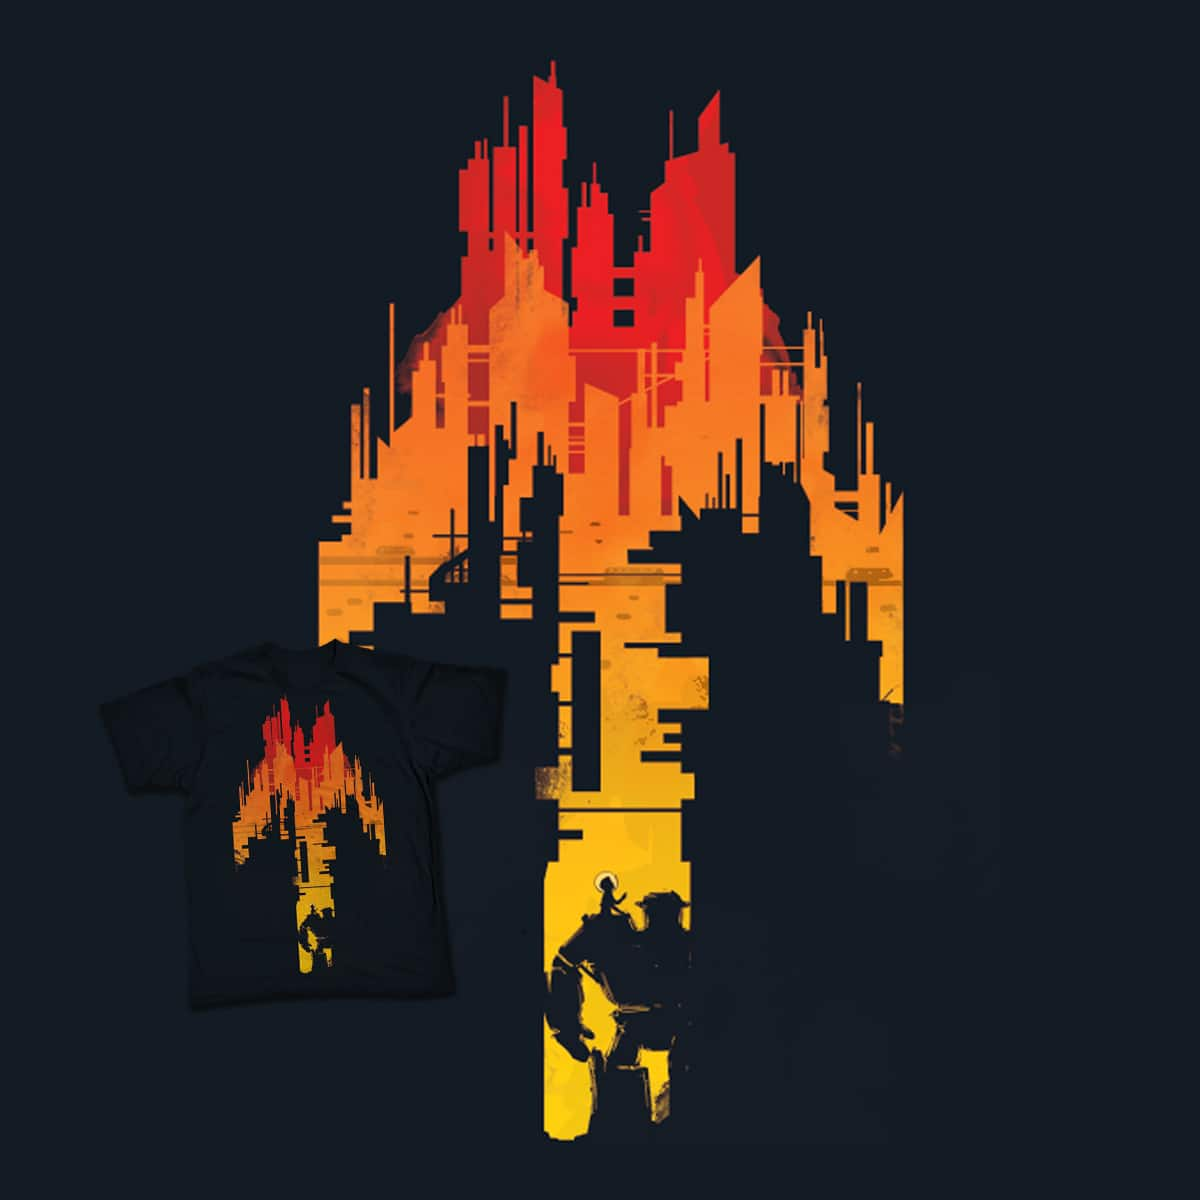 2085 by radiomode on Threadless